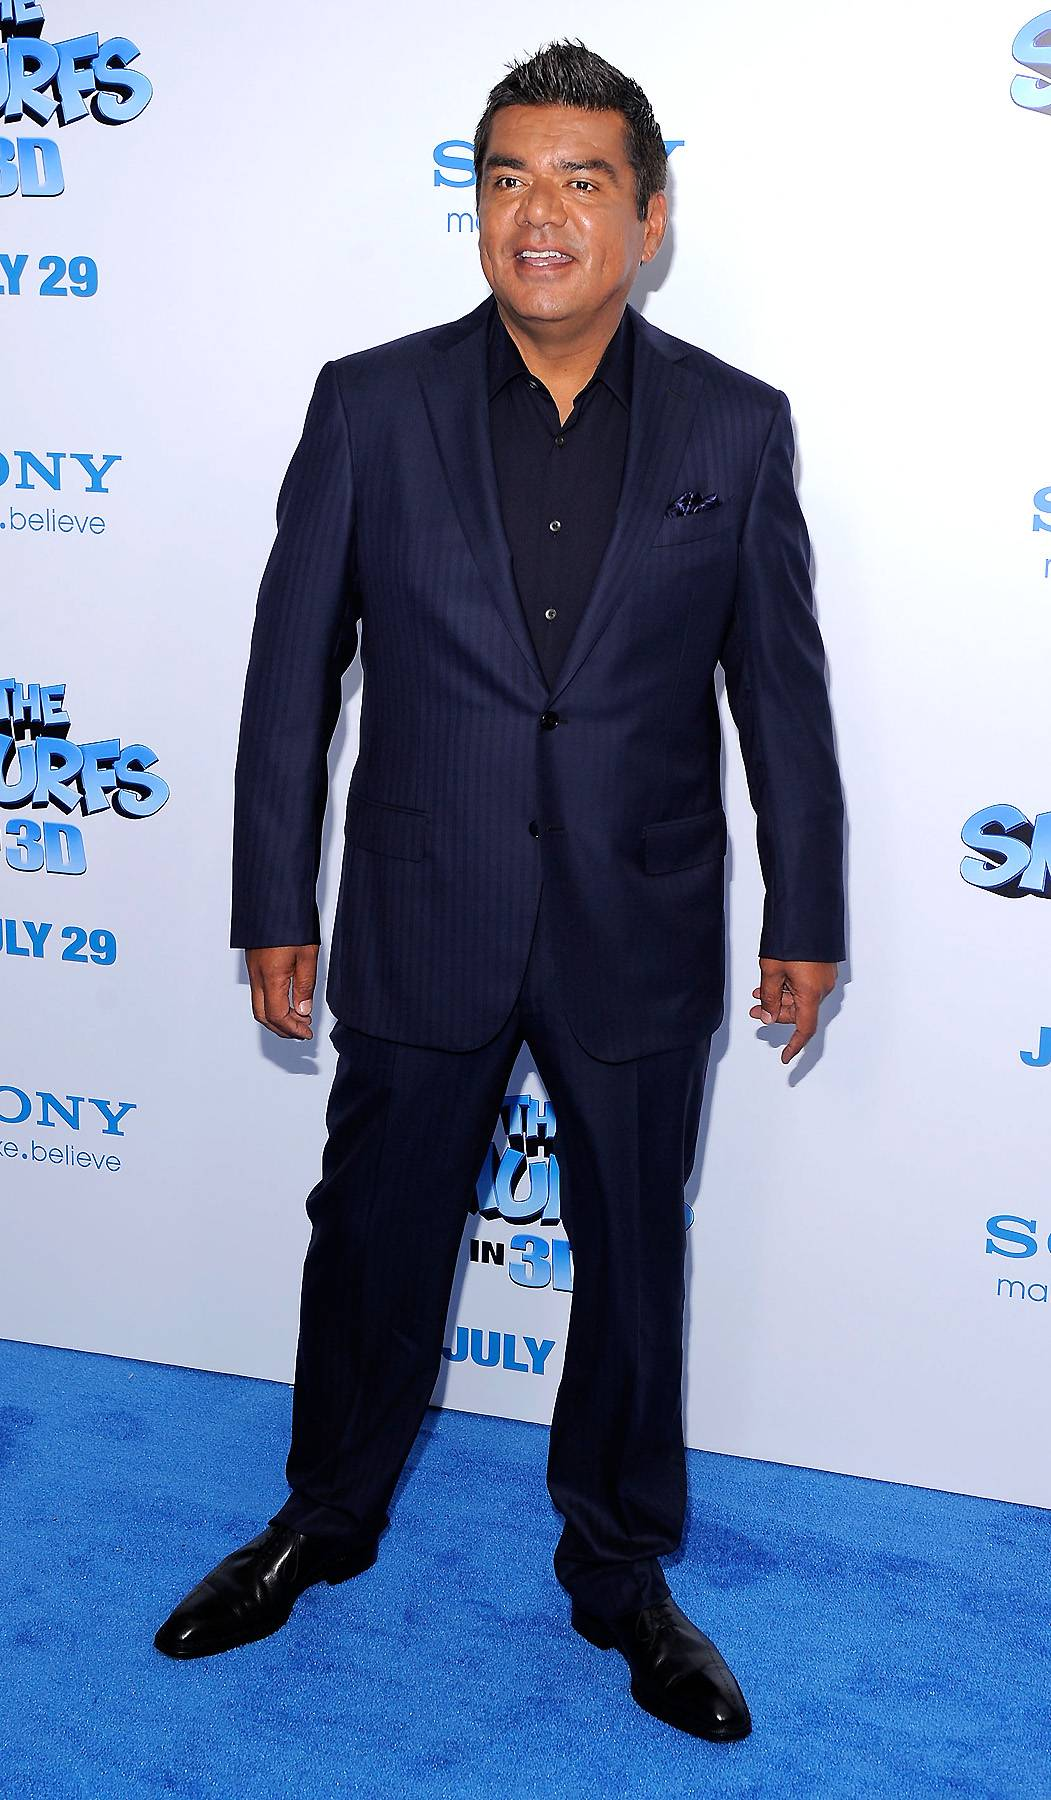 6.He Hosted His Own Radio Show - In the late '90s/early 2000s, George Lopez hosted a Clear Channel radio show, making him the first Latino to have a radio show in an English market.(Photo: Jemal Countess/Getty Images)